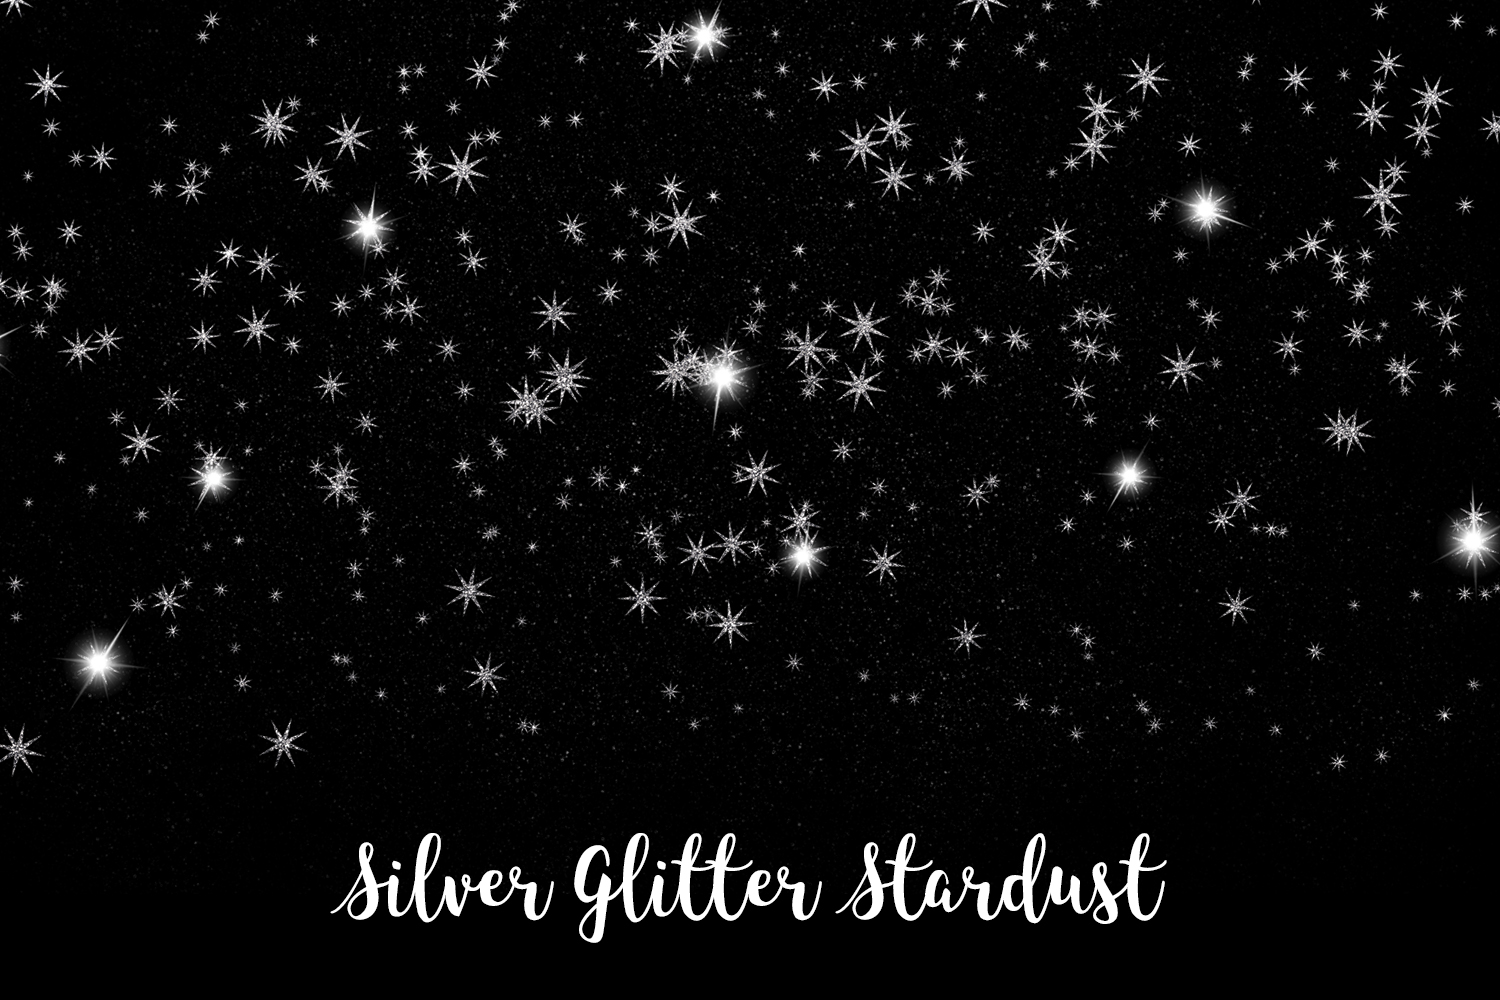 Silver Glitter Stardust, Transparent PNG example image 7